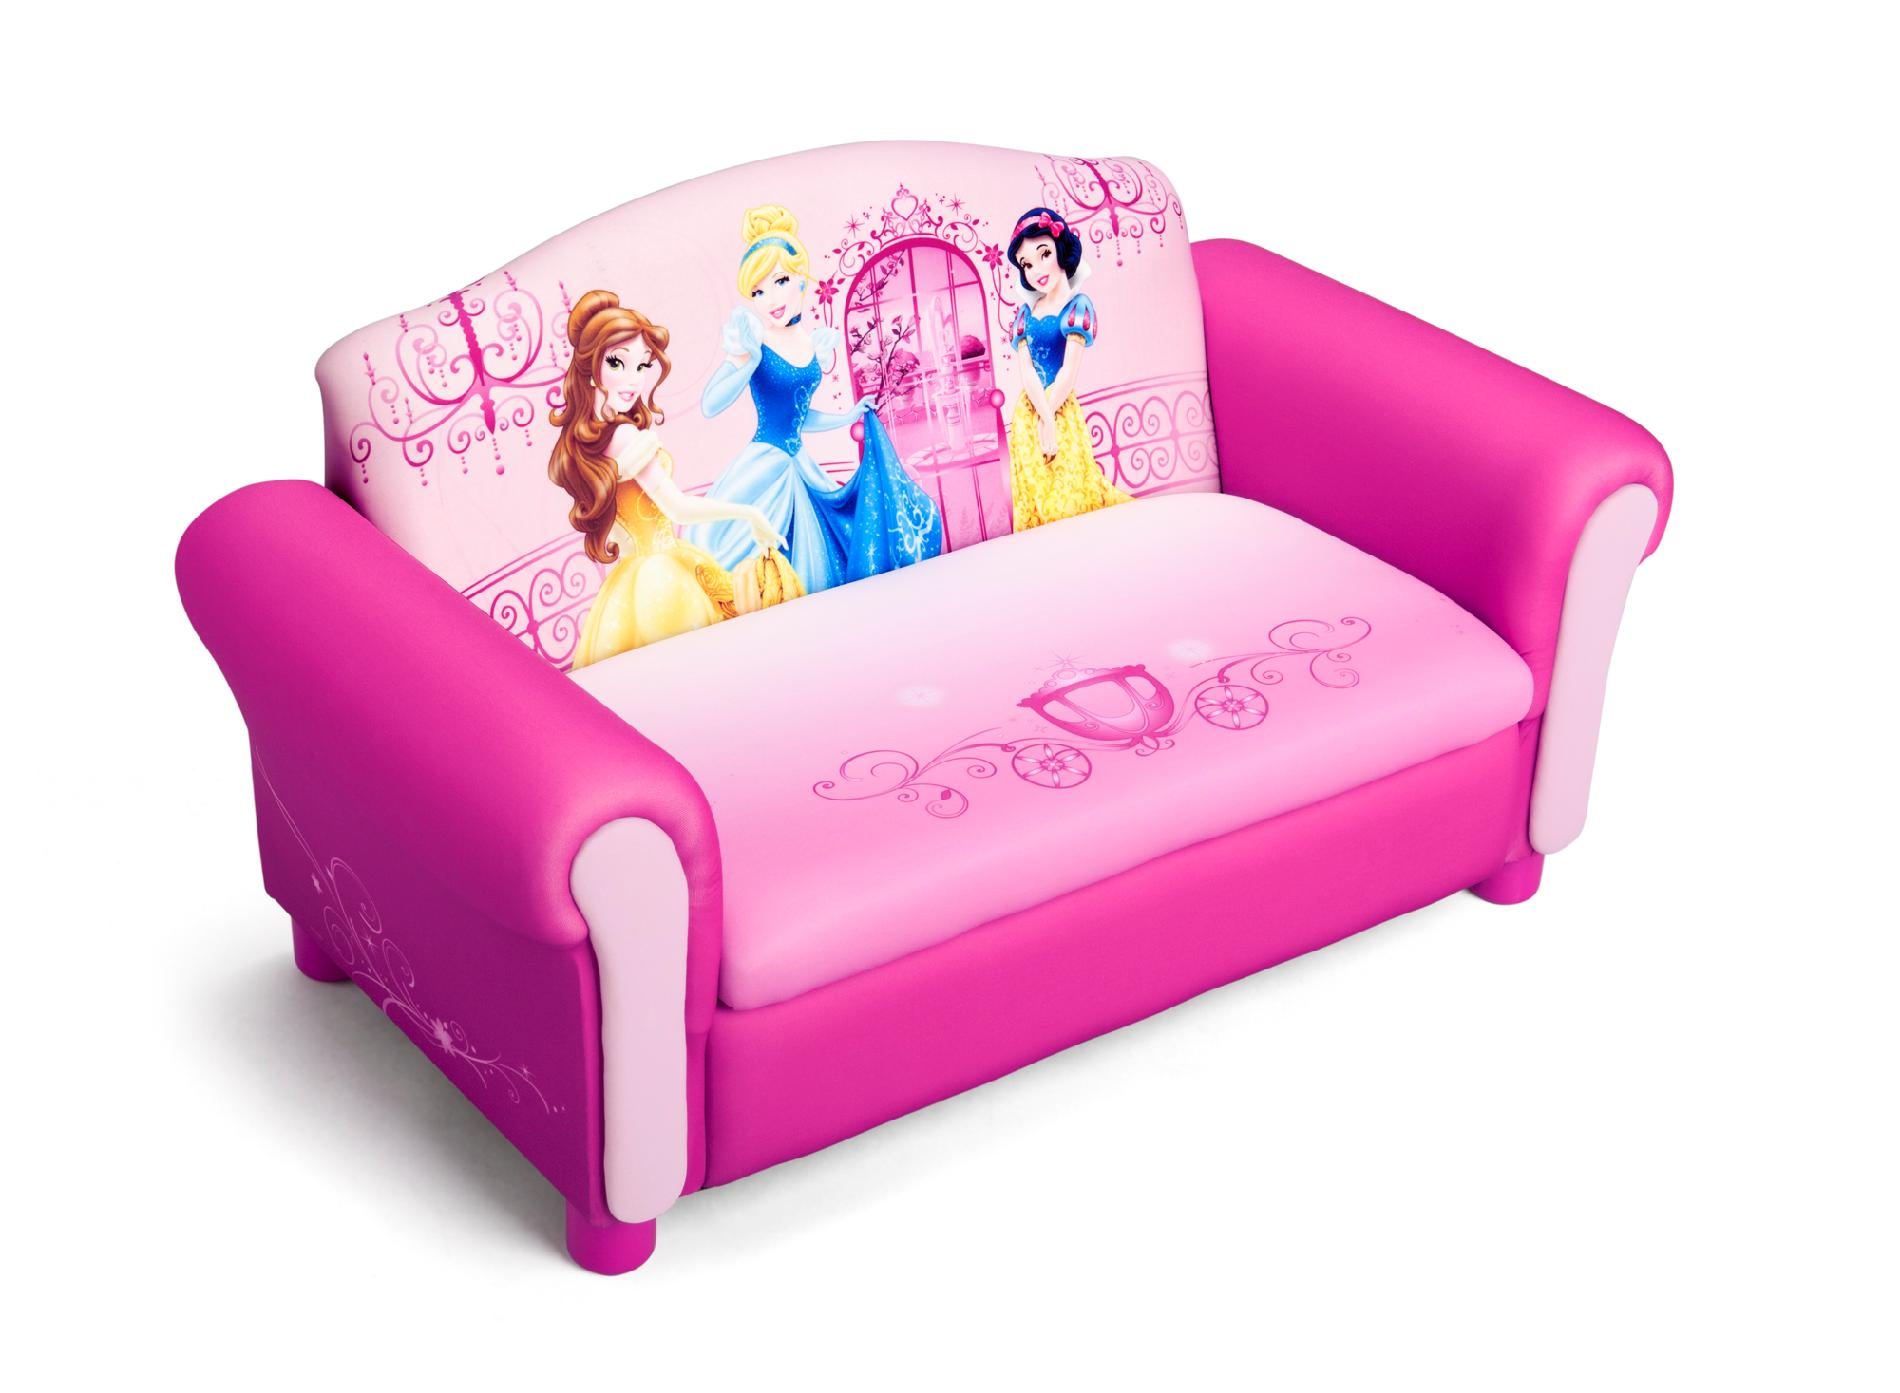 mickey mouse flip out sofa australia green leather sofas online disney princess chair gradschoolfairs